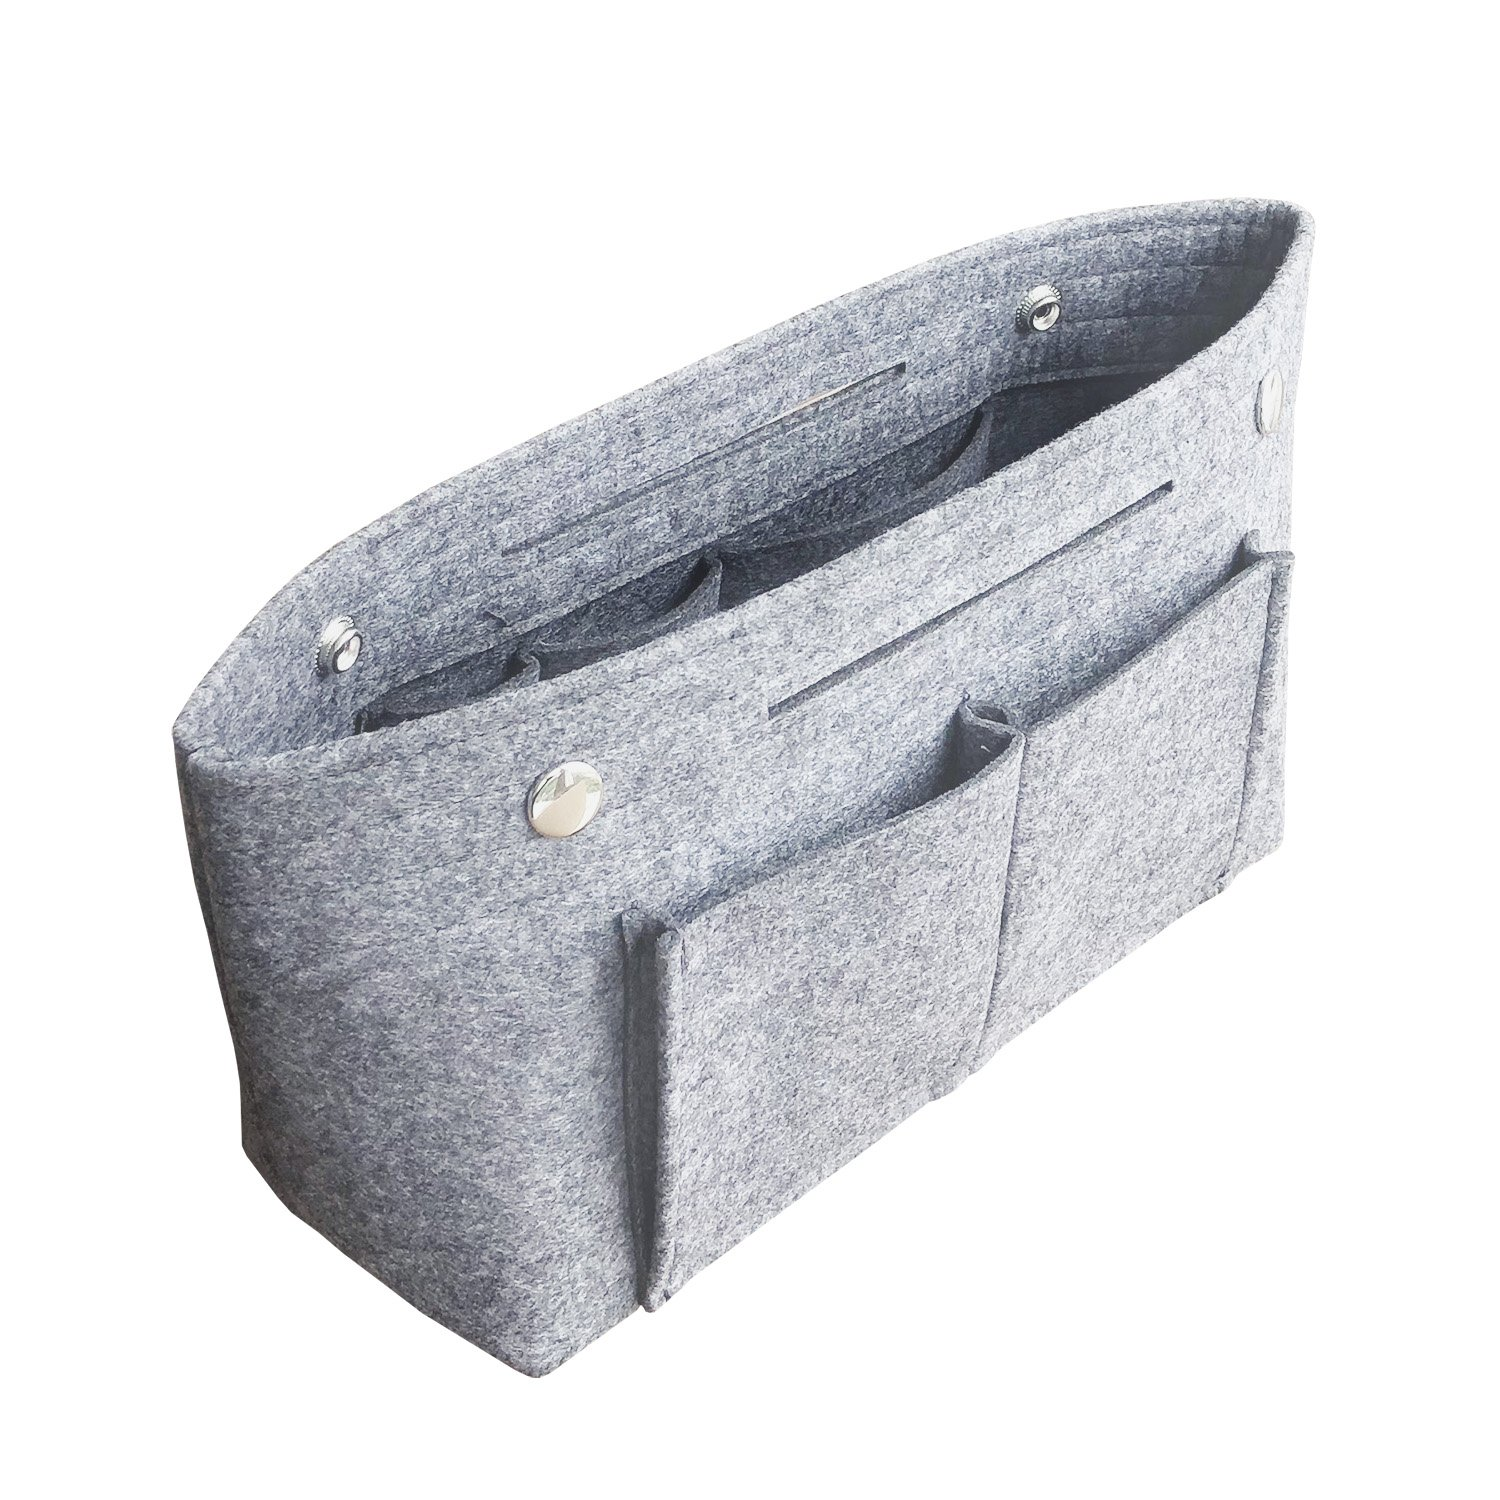 APSOONSELL Felt Tote Handbag Organizer Insert for Women, Light Grey - Large by APSOONSELL (Image #2)